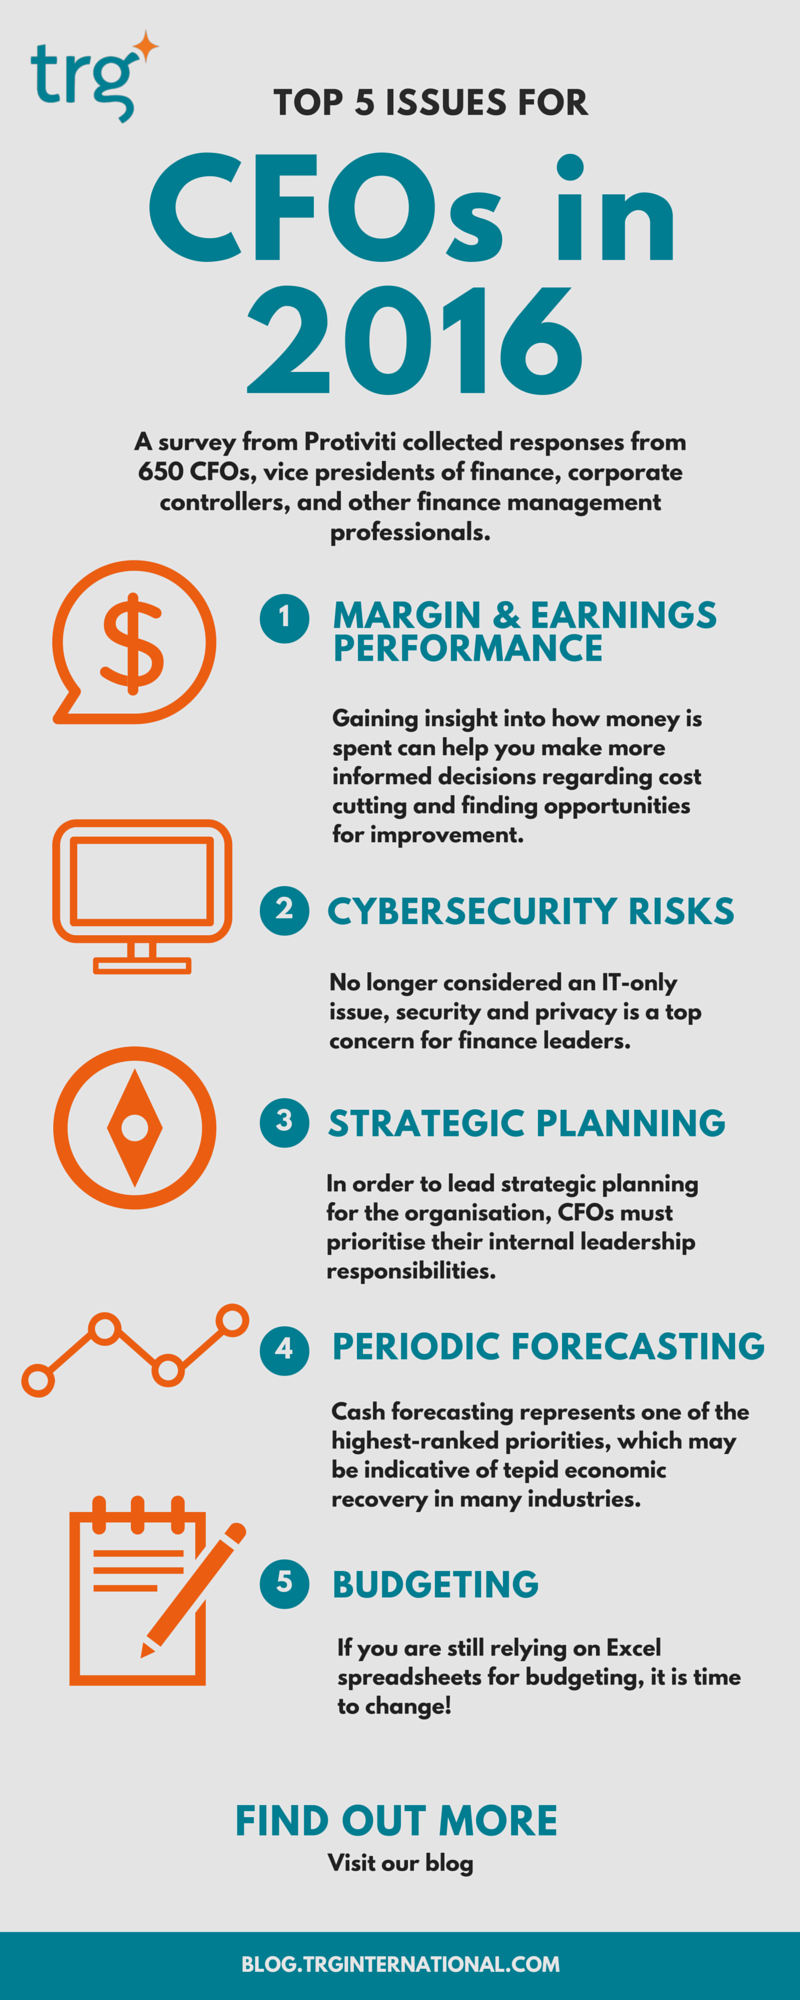 [Infographic ] Top 5 issues for CFOs in 2016